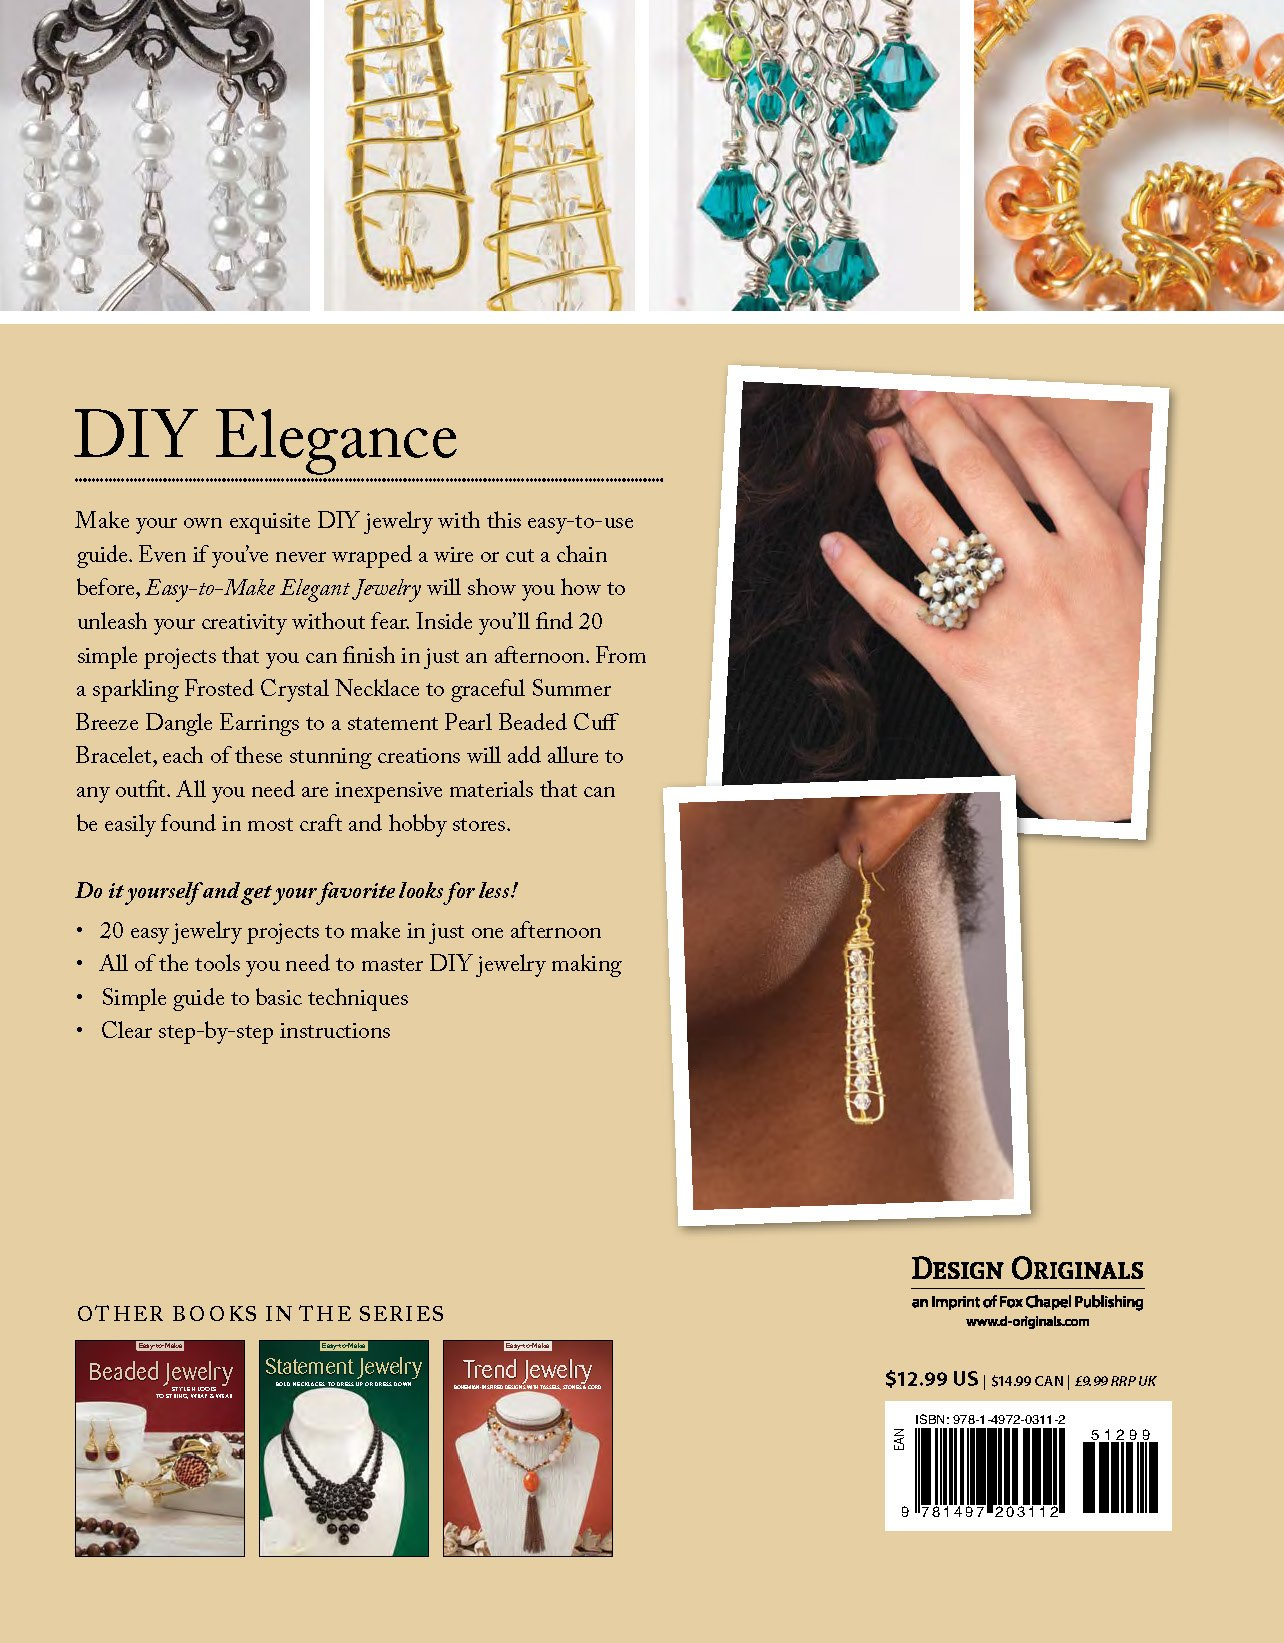 Easy to make elegant jewelry chic projects that sparkle shine easy to make elegant jewelry chic projects that sparkle shine kristine regan daniel jennifer eno wolf chloe pemberton 9781497203112 amazon books solutioingenieria Choice Image